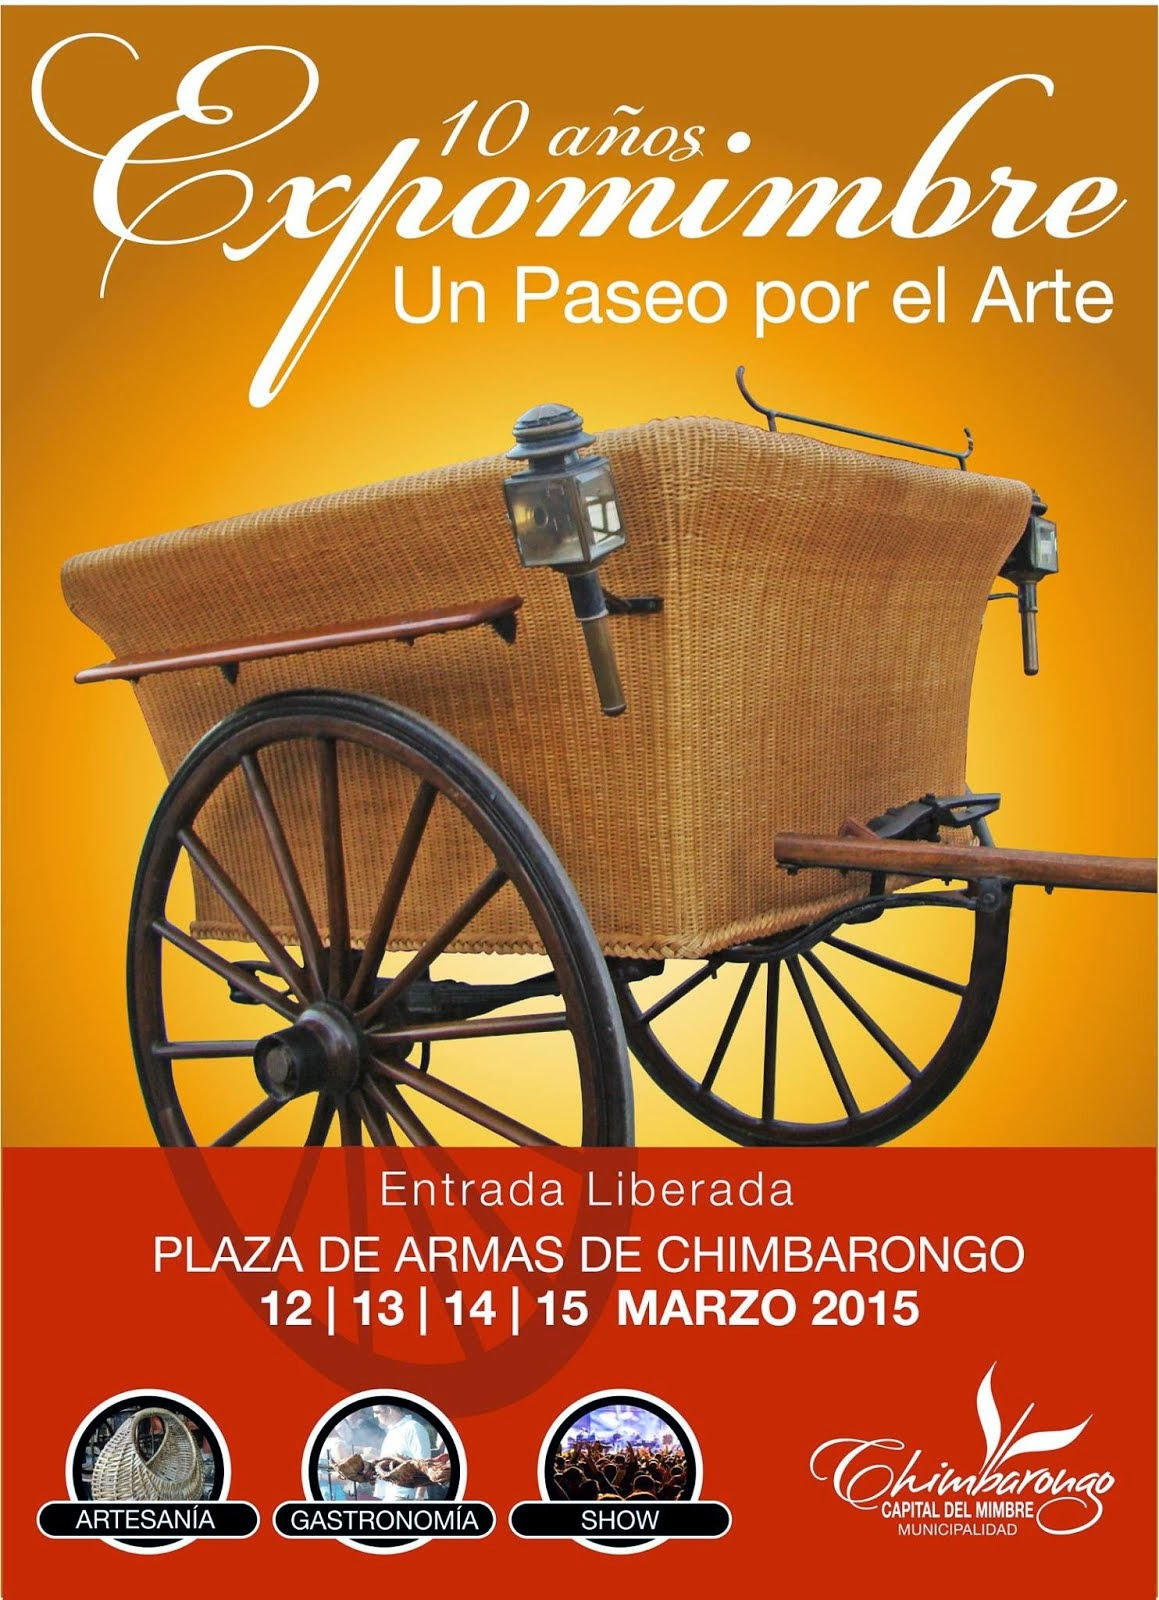 Expomimbre 2015